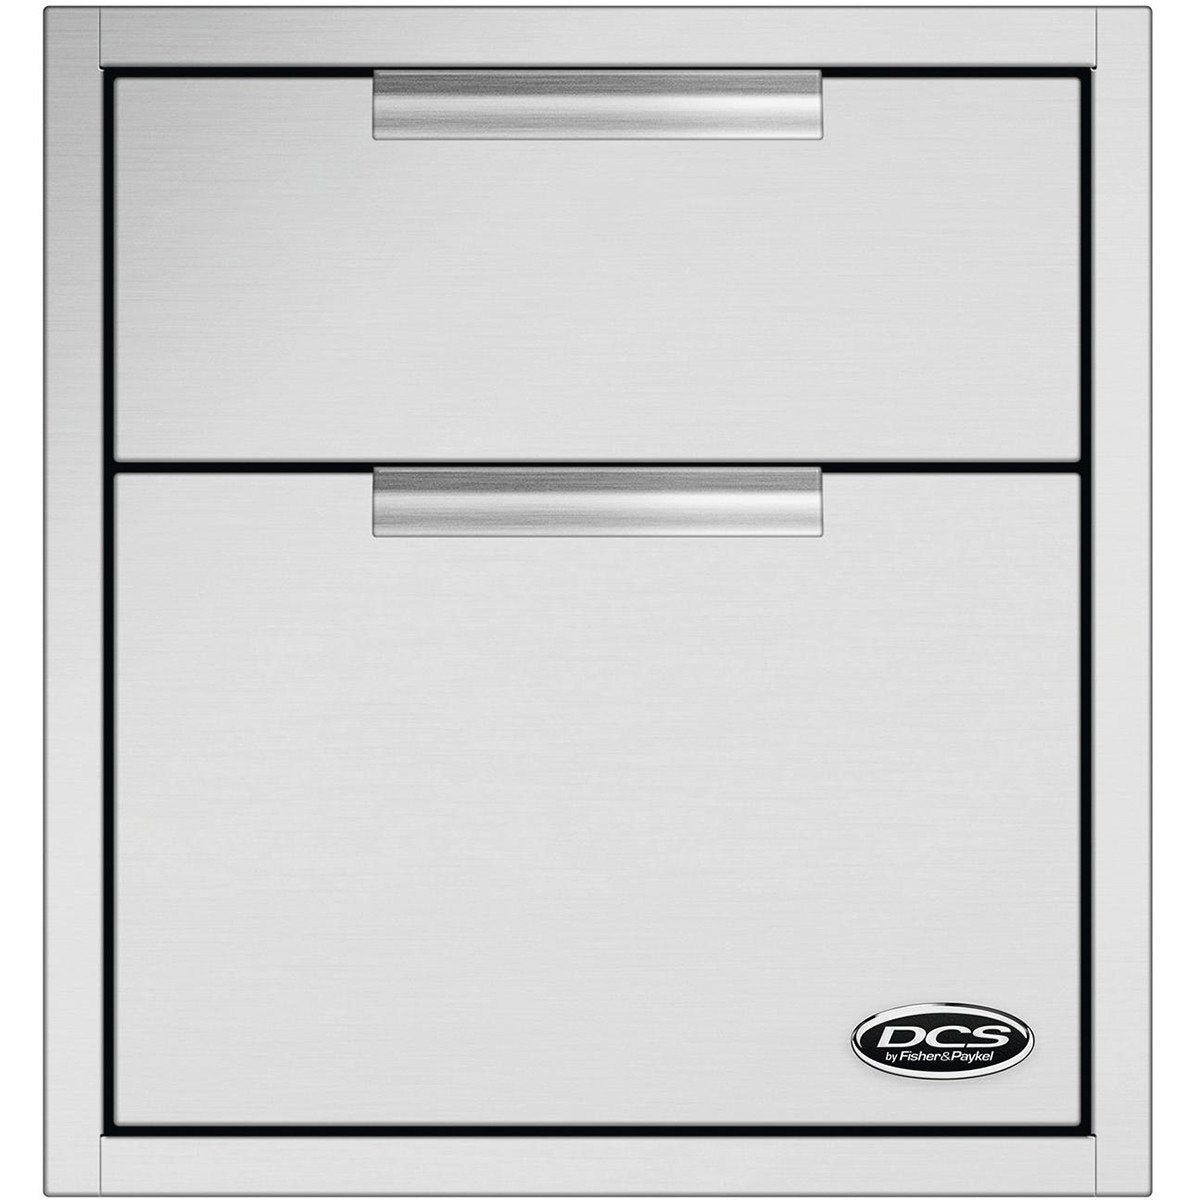 DCS 20-Inch Tower Double Drawer w/ Soft Close